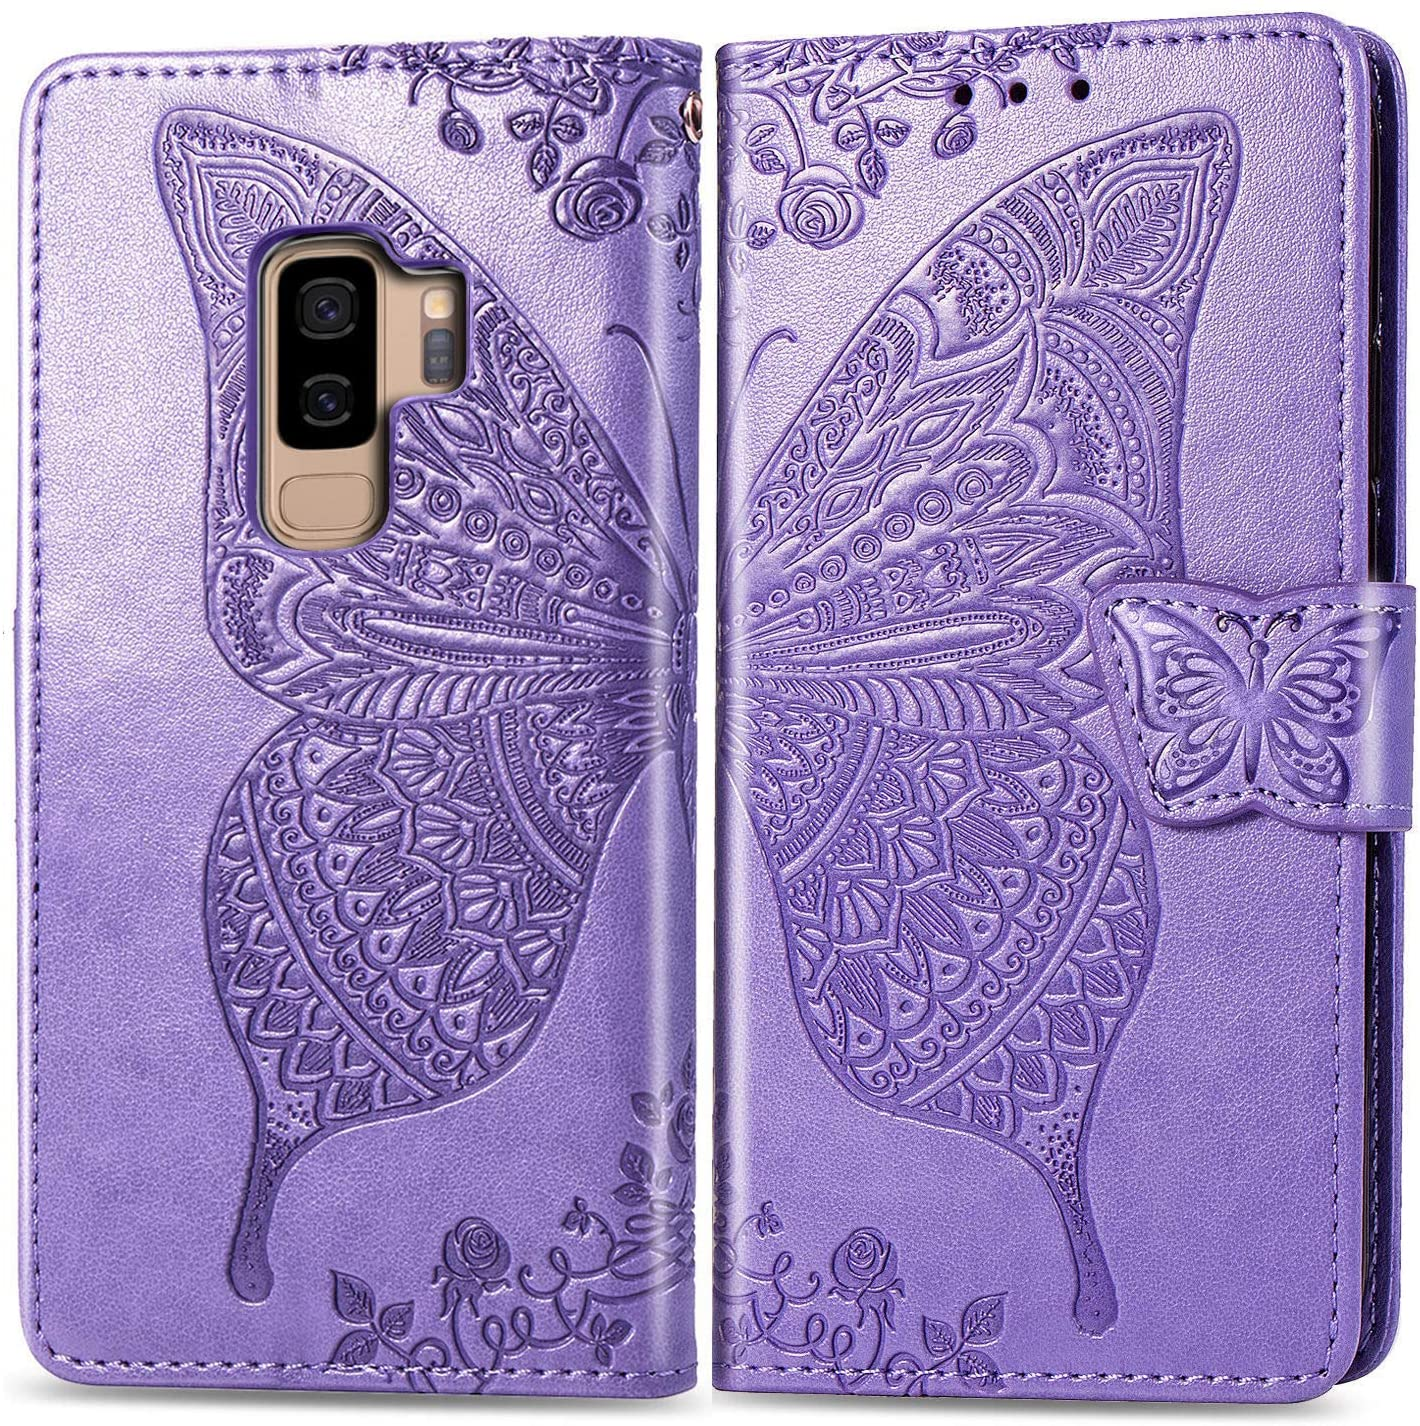 Ropigo Samsung Galaxy S9 Plus Wallet Case | Emboss Butterfly | Magnetic Closure | Kickstand | Wrist Strap | Compatible with Galaxy S9 Plus Lavender